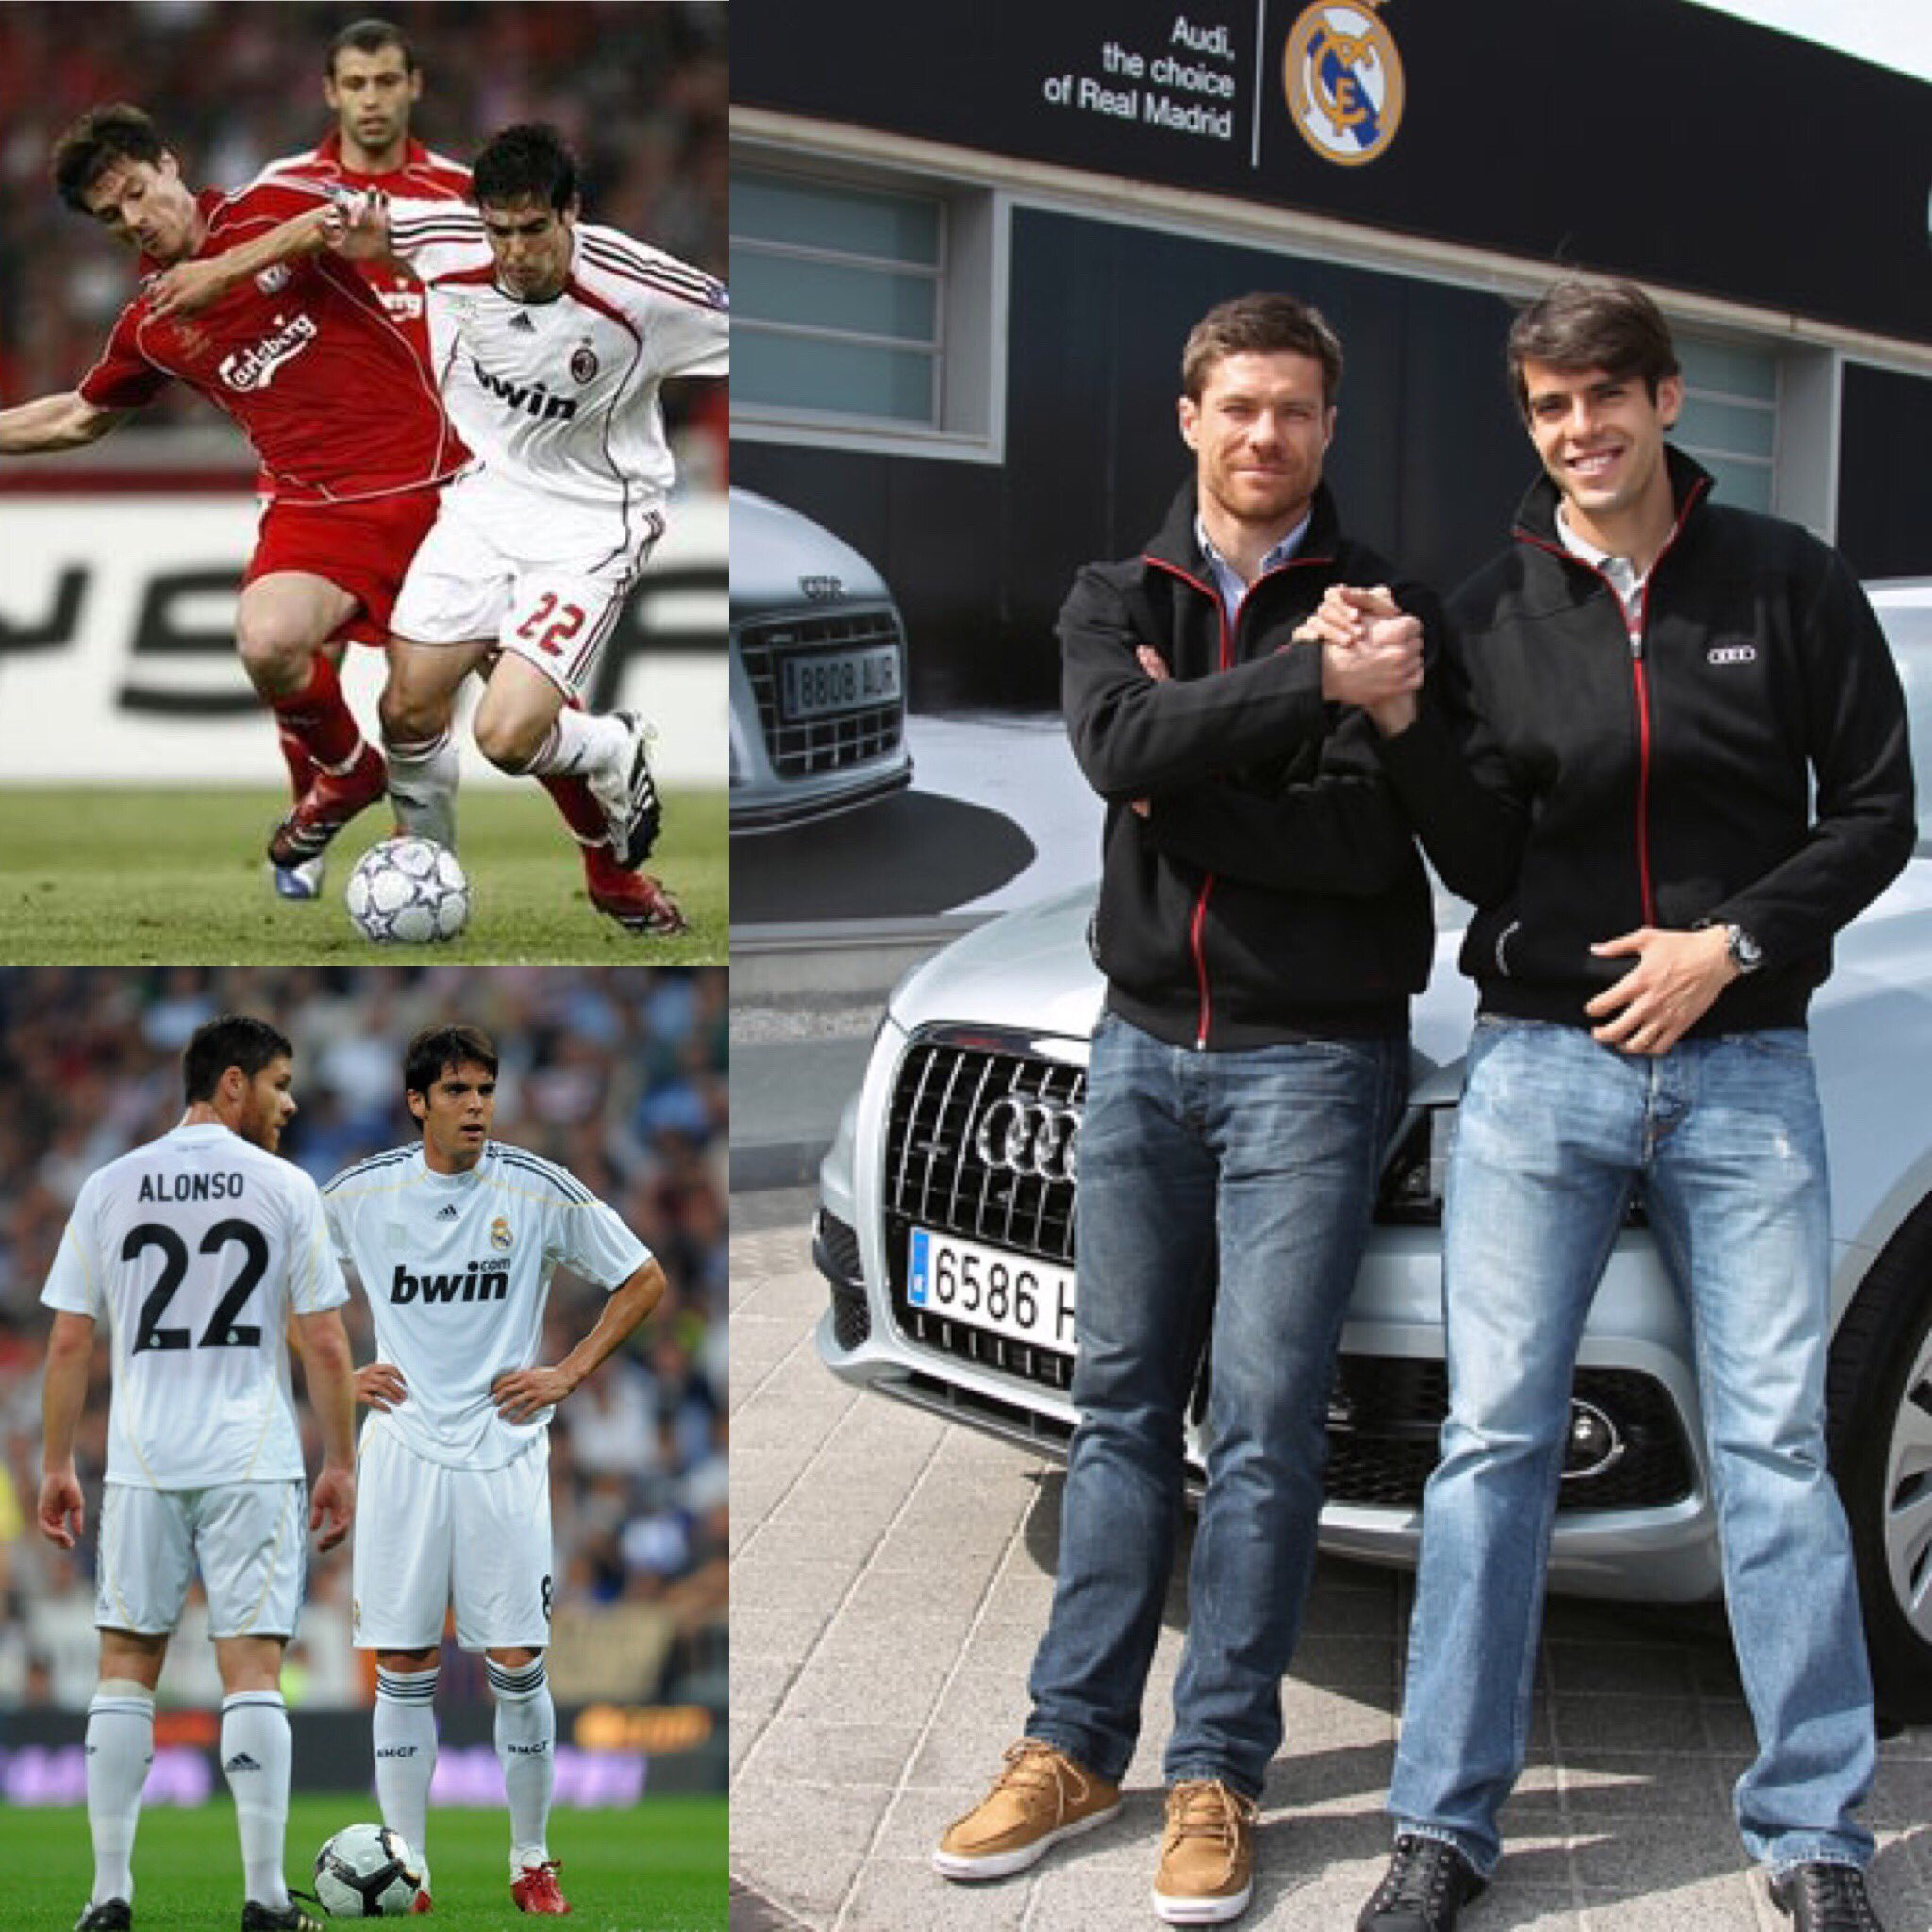 Rivals...teammates... friends!! @XabiAlonso best of luck in the future �� https://t.co/Nk6qyNzSYA